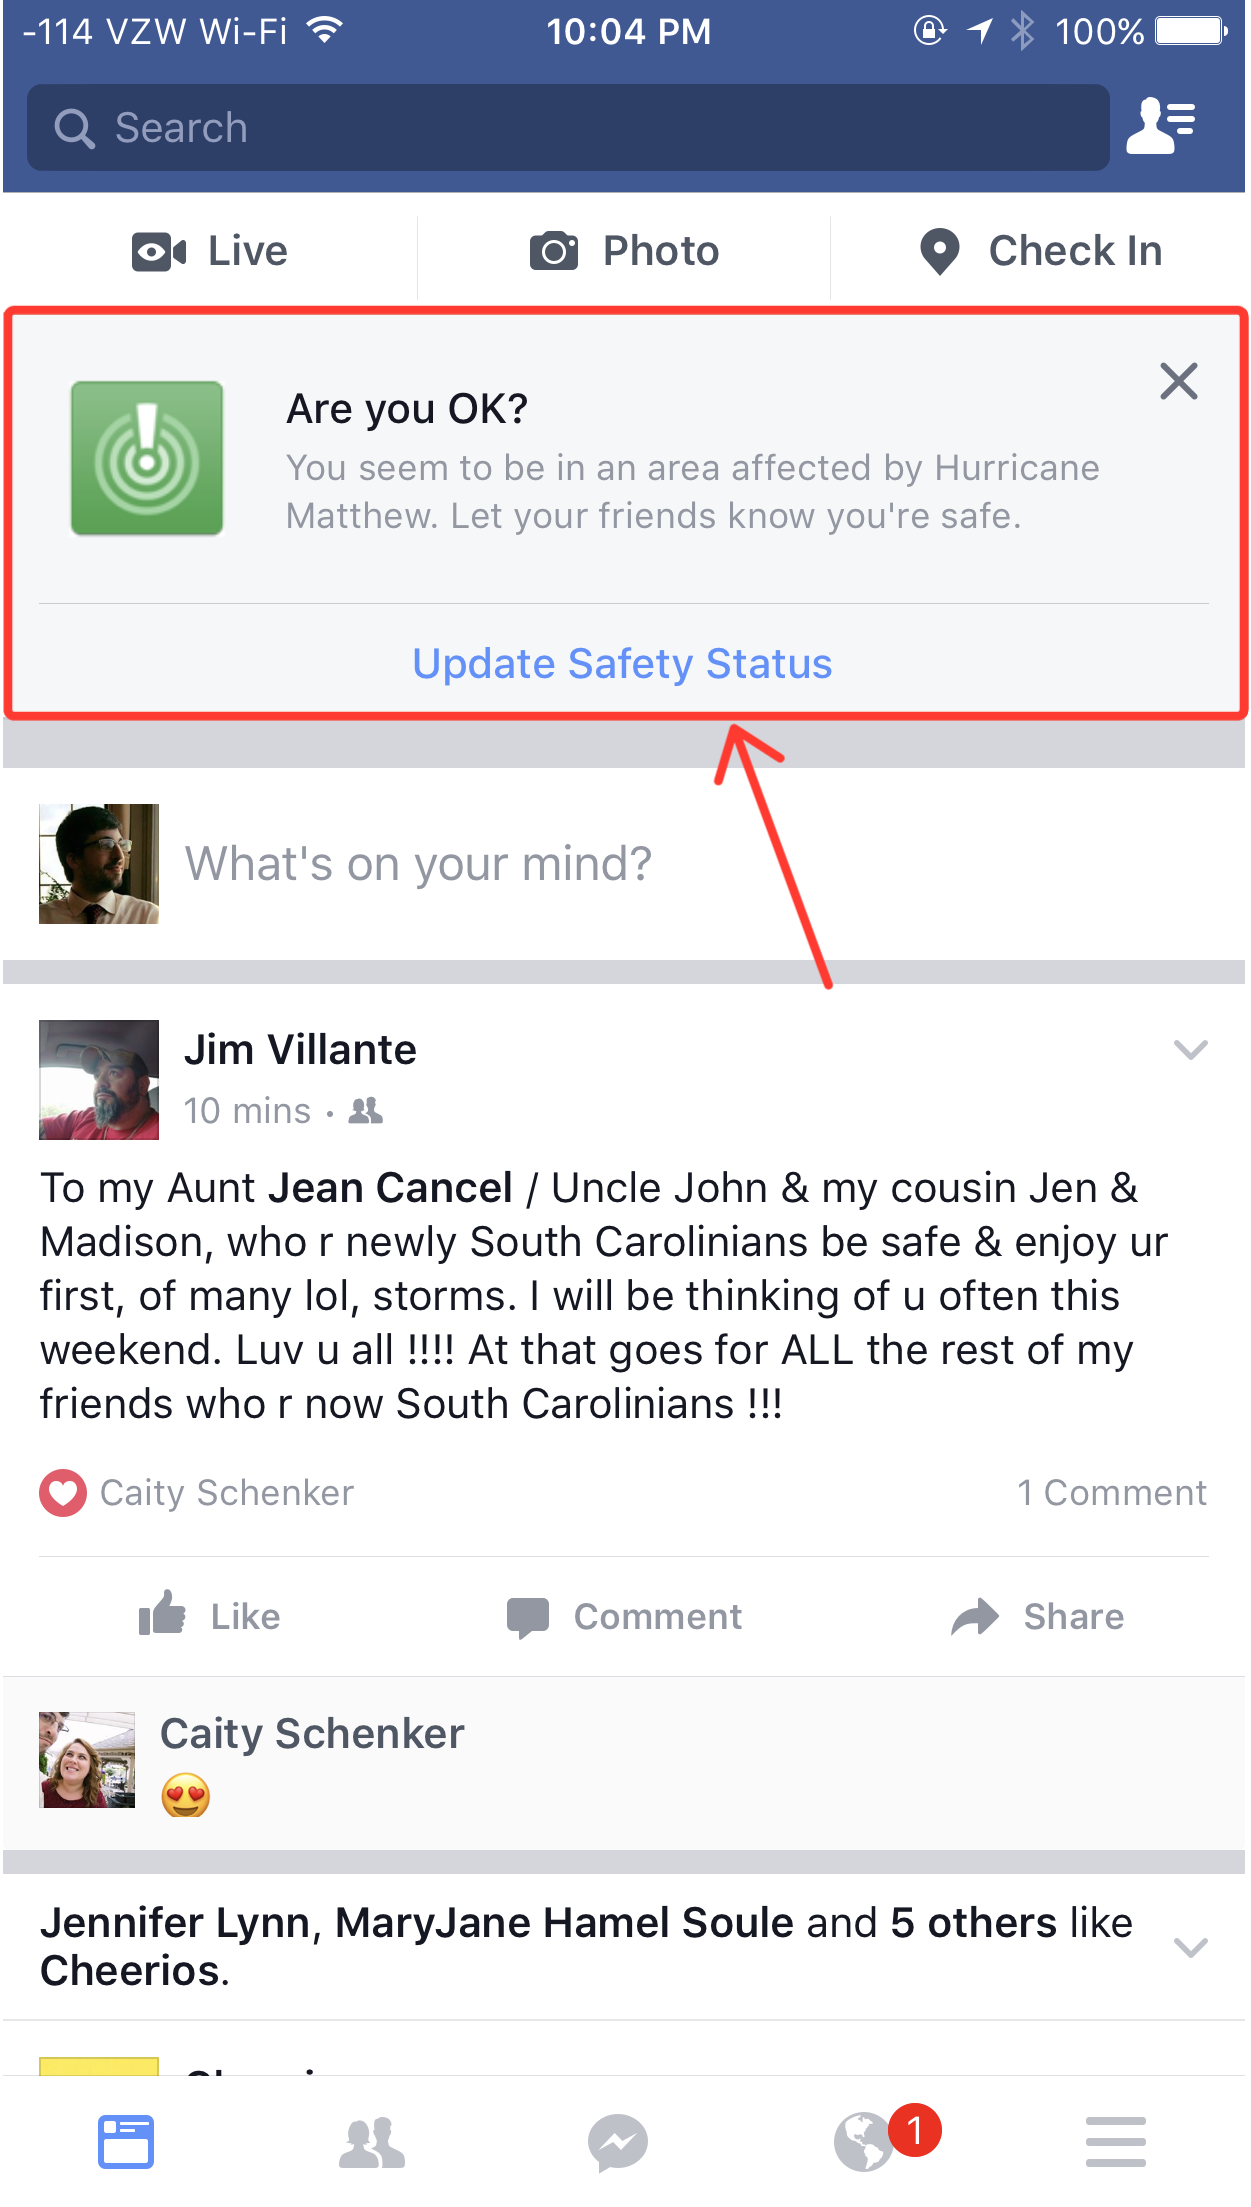 If you're in an affected area, look for an alert at the top of your Facebook feed to check in.